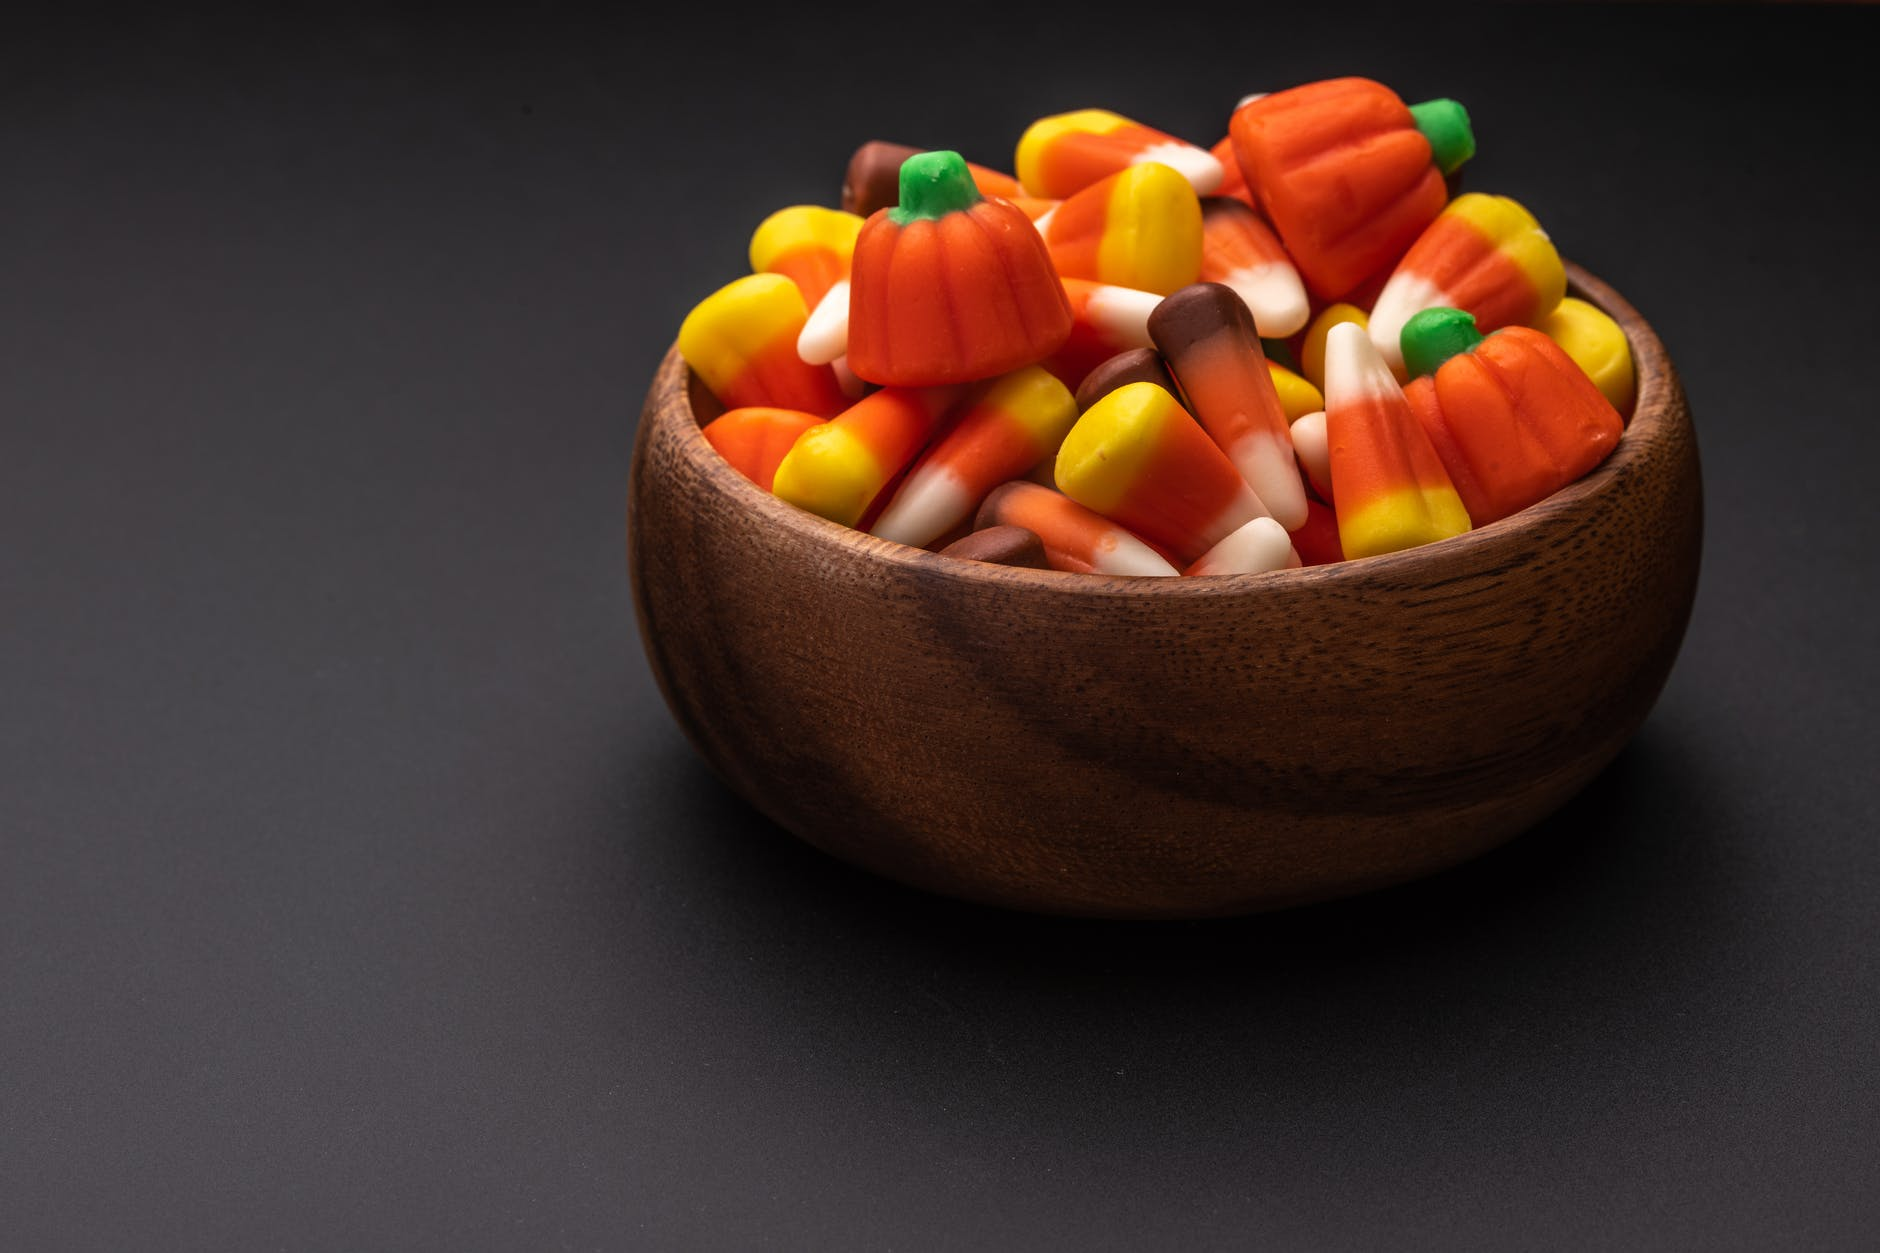 bowl with yummy colorful gummies on table